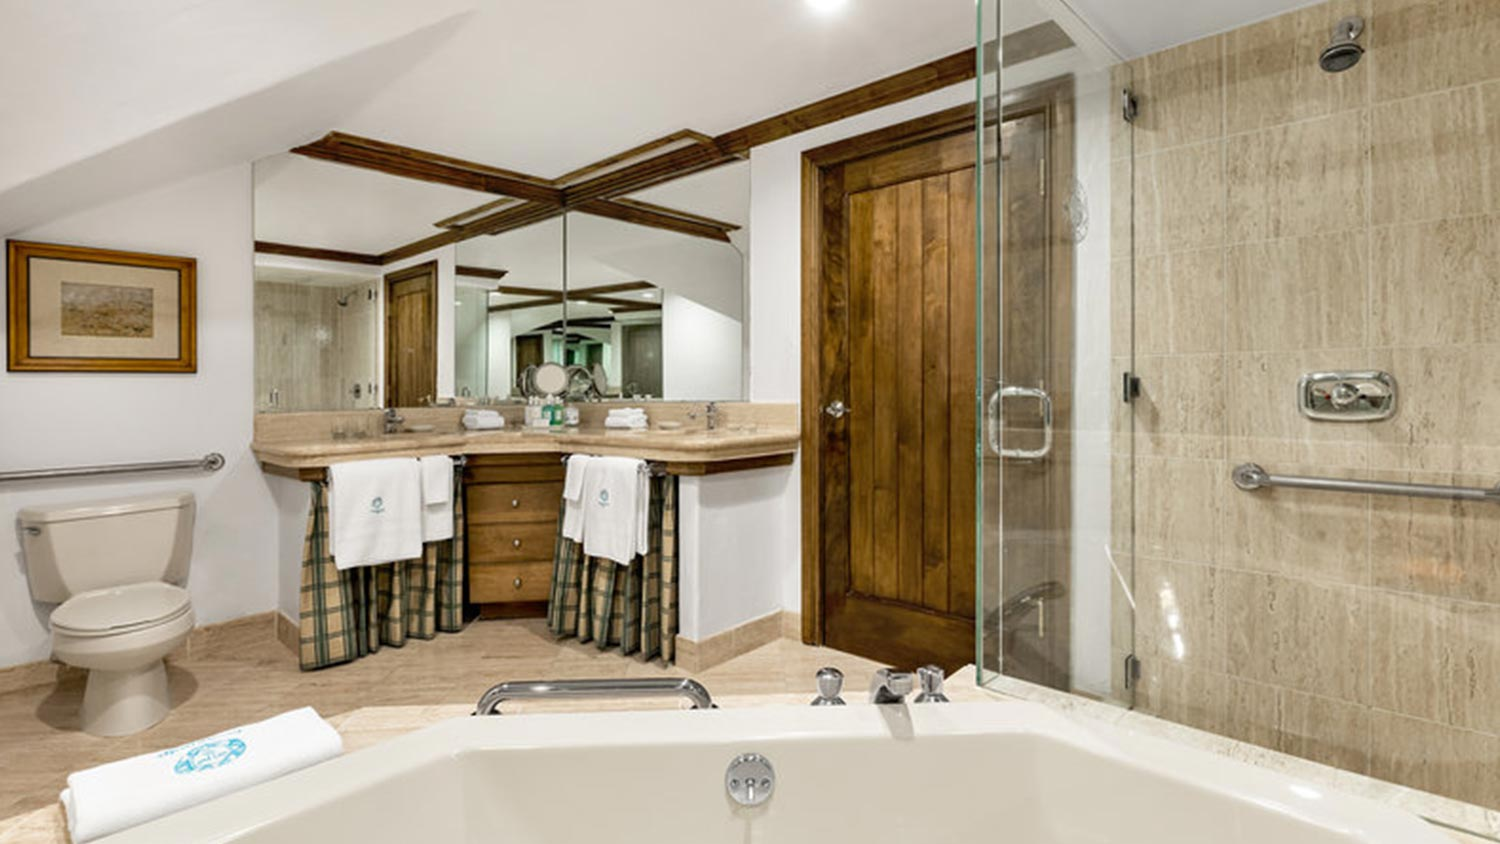 Bathroom with double sink, and tub and showers with handlebars